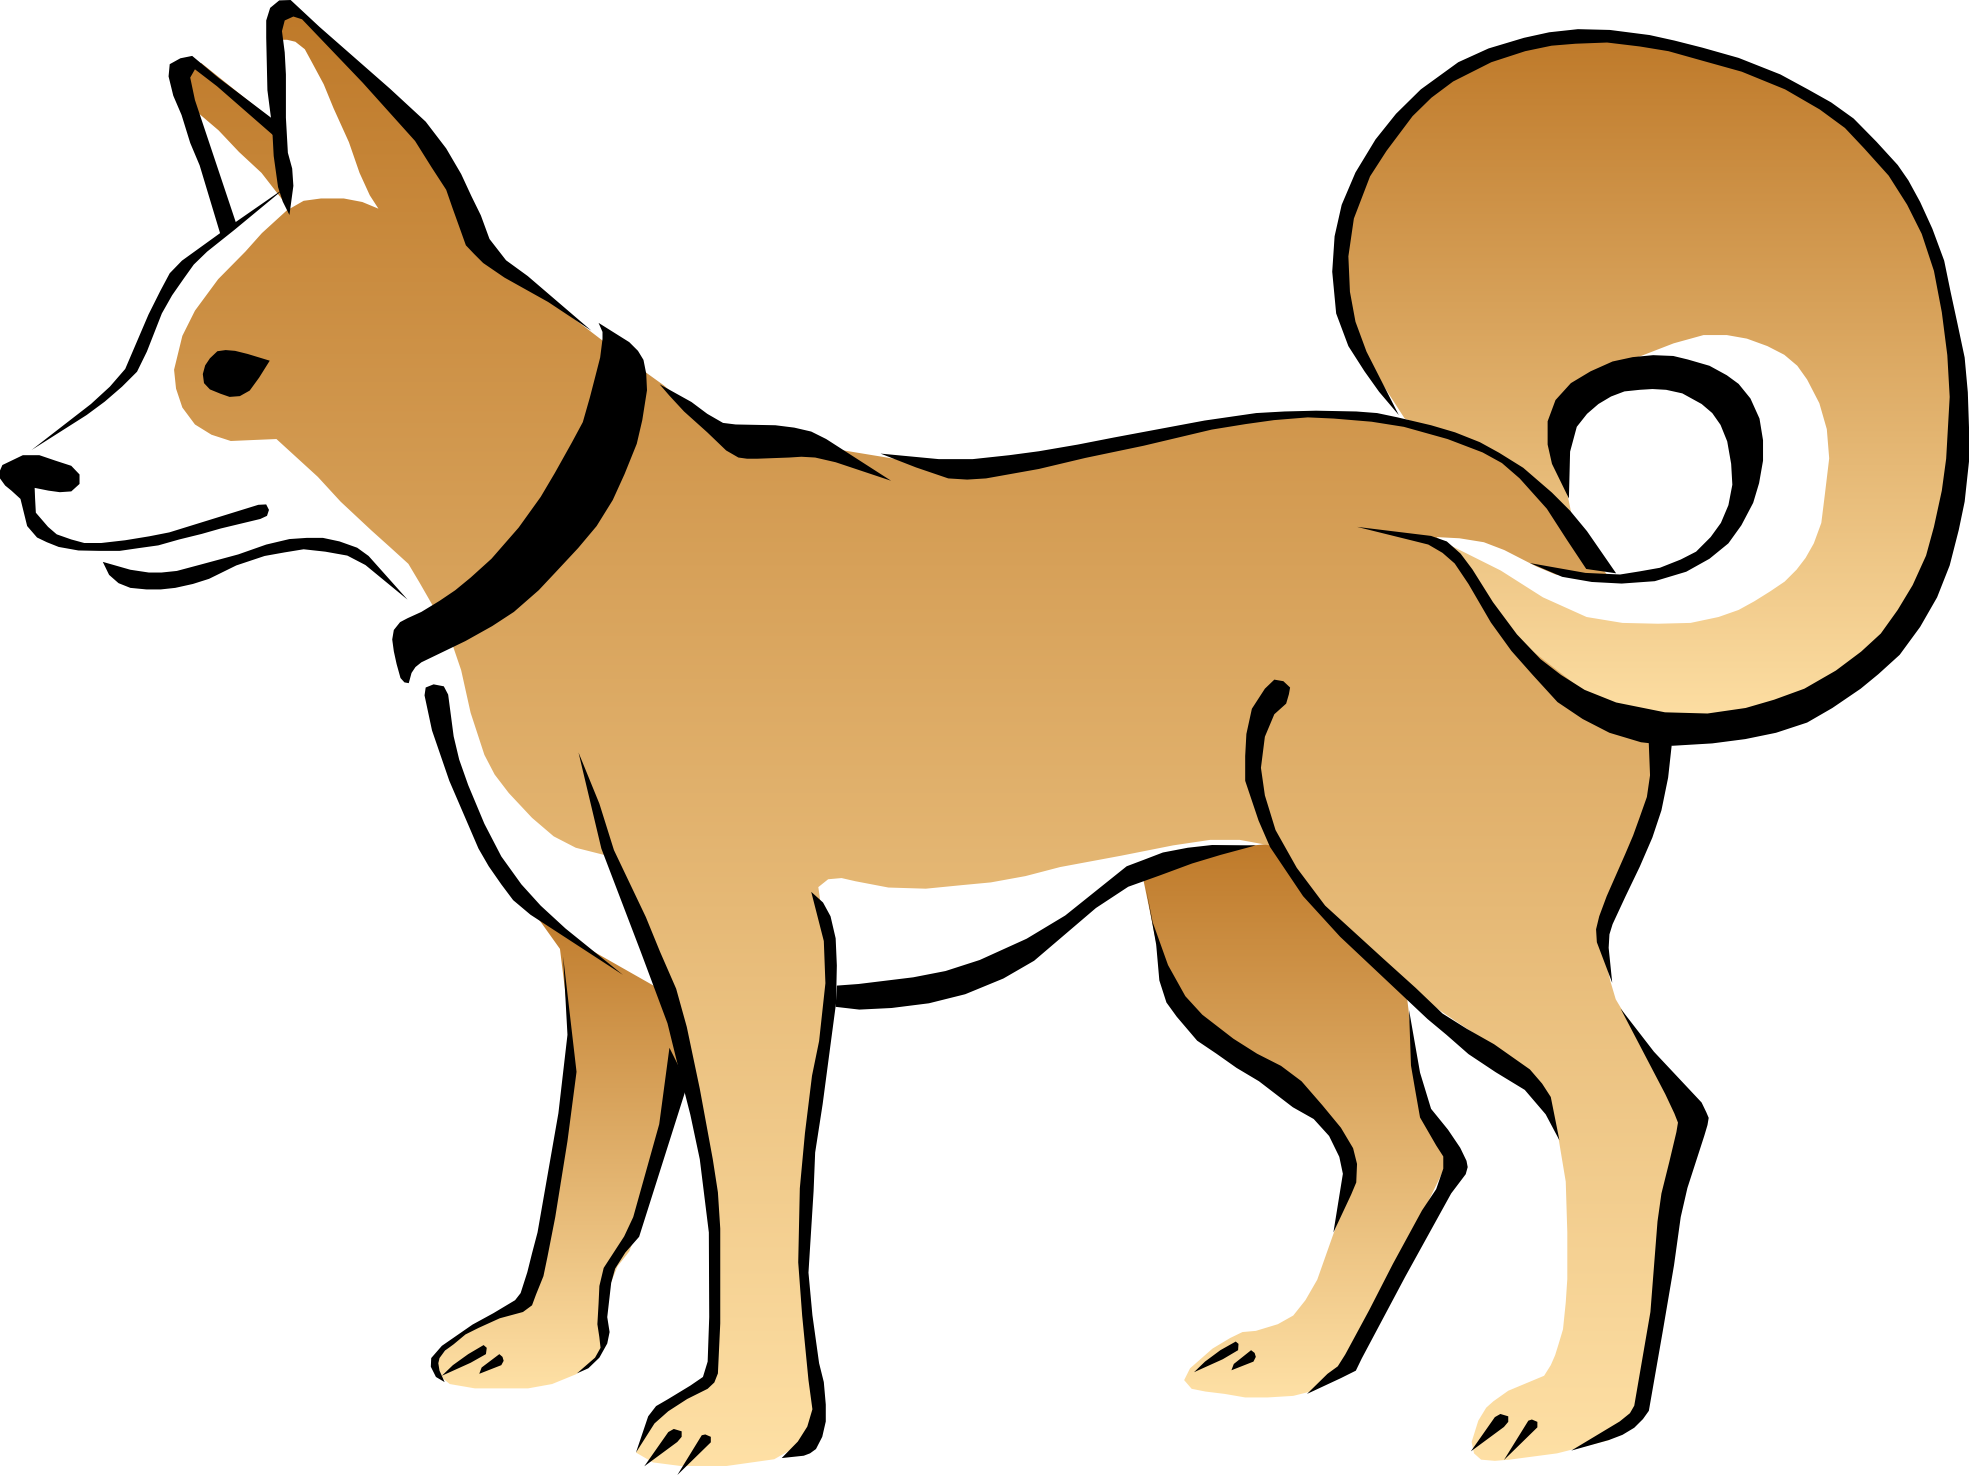 Reading dog clipart freeuse Cute Dog And Cat Clip Art | Clipart Panda - Free Clipart Images ... freeuse